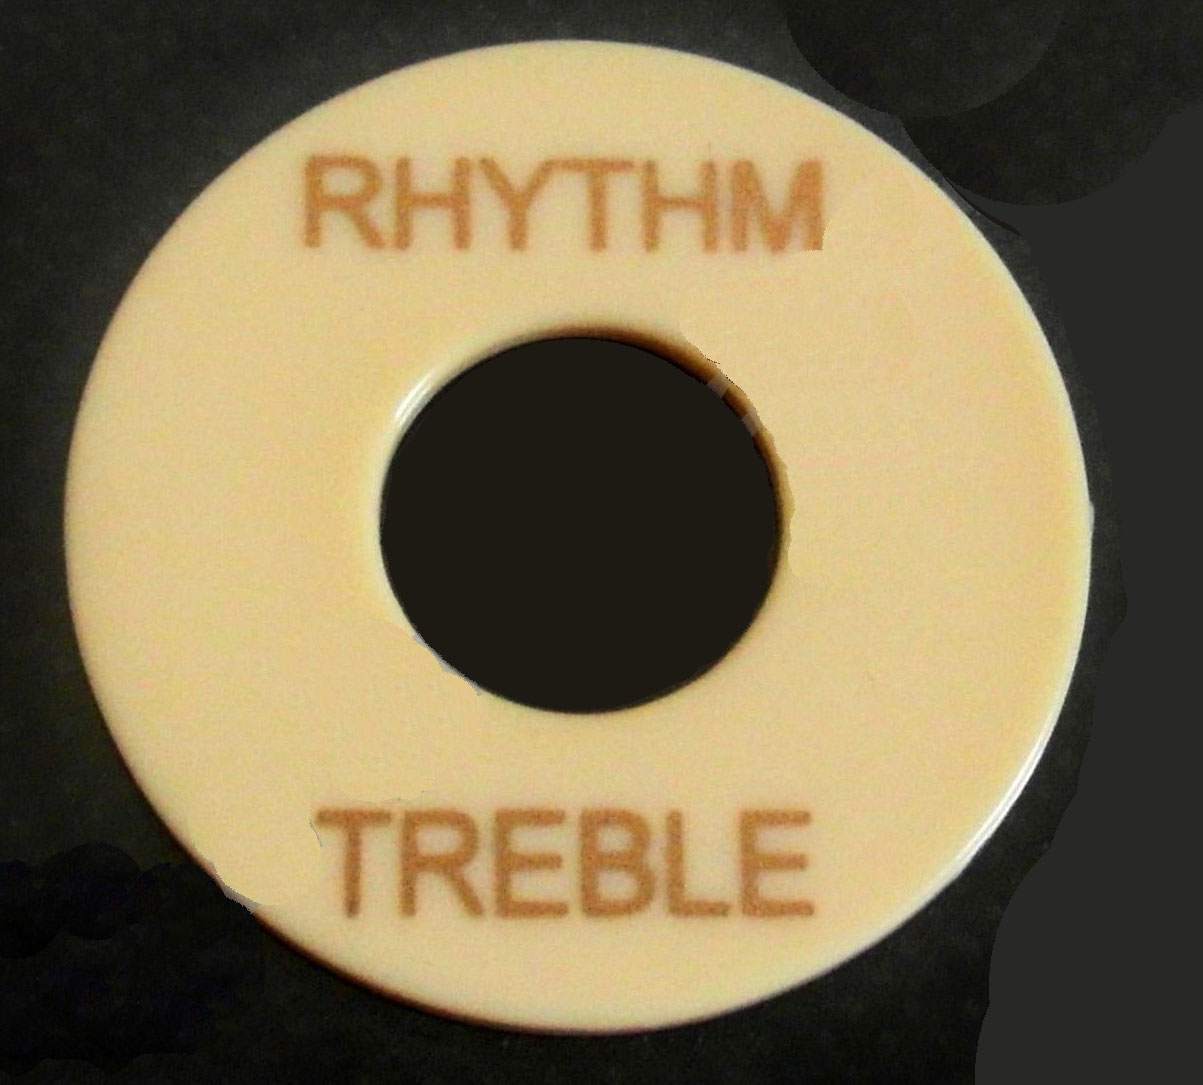 rhythm_Treble_switch-ring